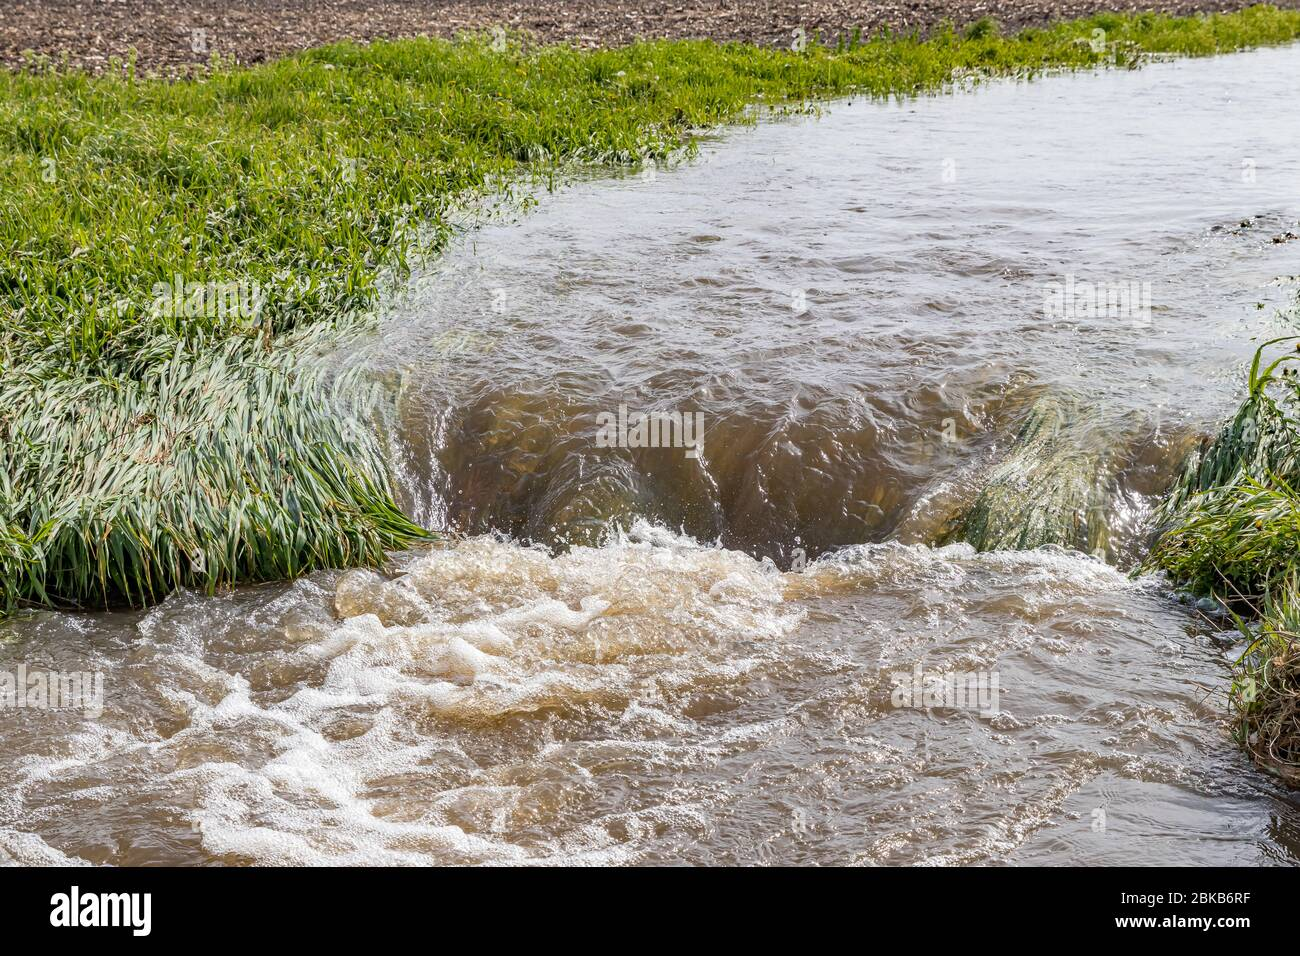 Water flowing in farm field waterway after heavy rain and storms caused flooding. Concept of soil erosion, water runoff control and management Stock Photo